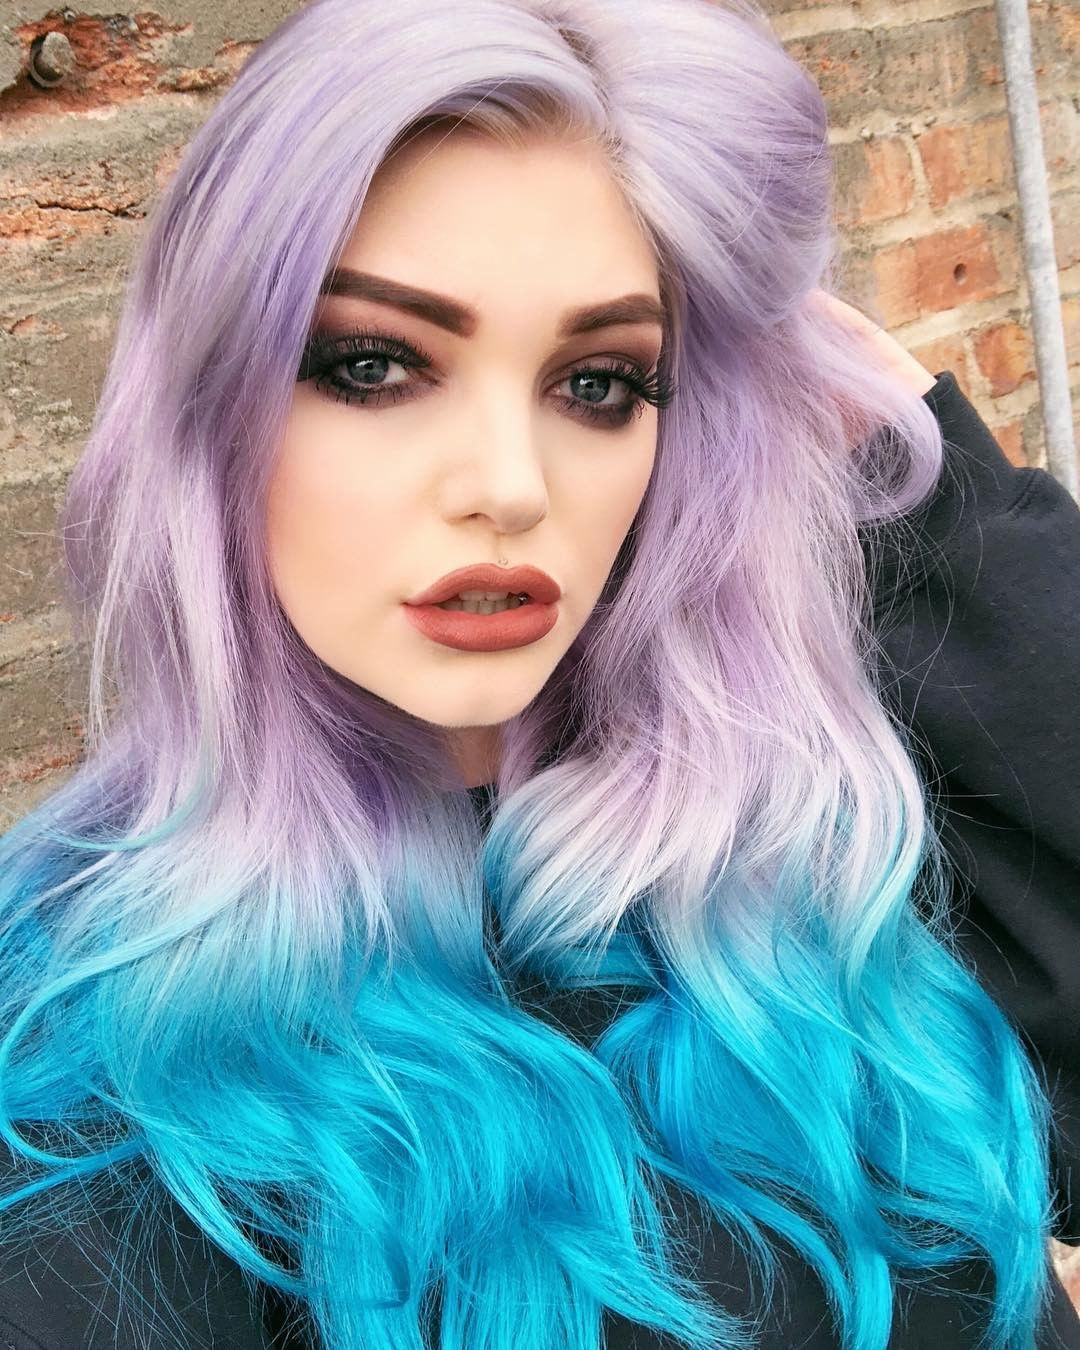 Jenniferbroders Added Some Aquamarine Tips Over Girls Night And It Looks Amazing Tie Dye Hair Wild Hair Color Hair Styles